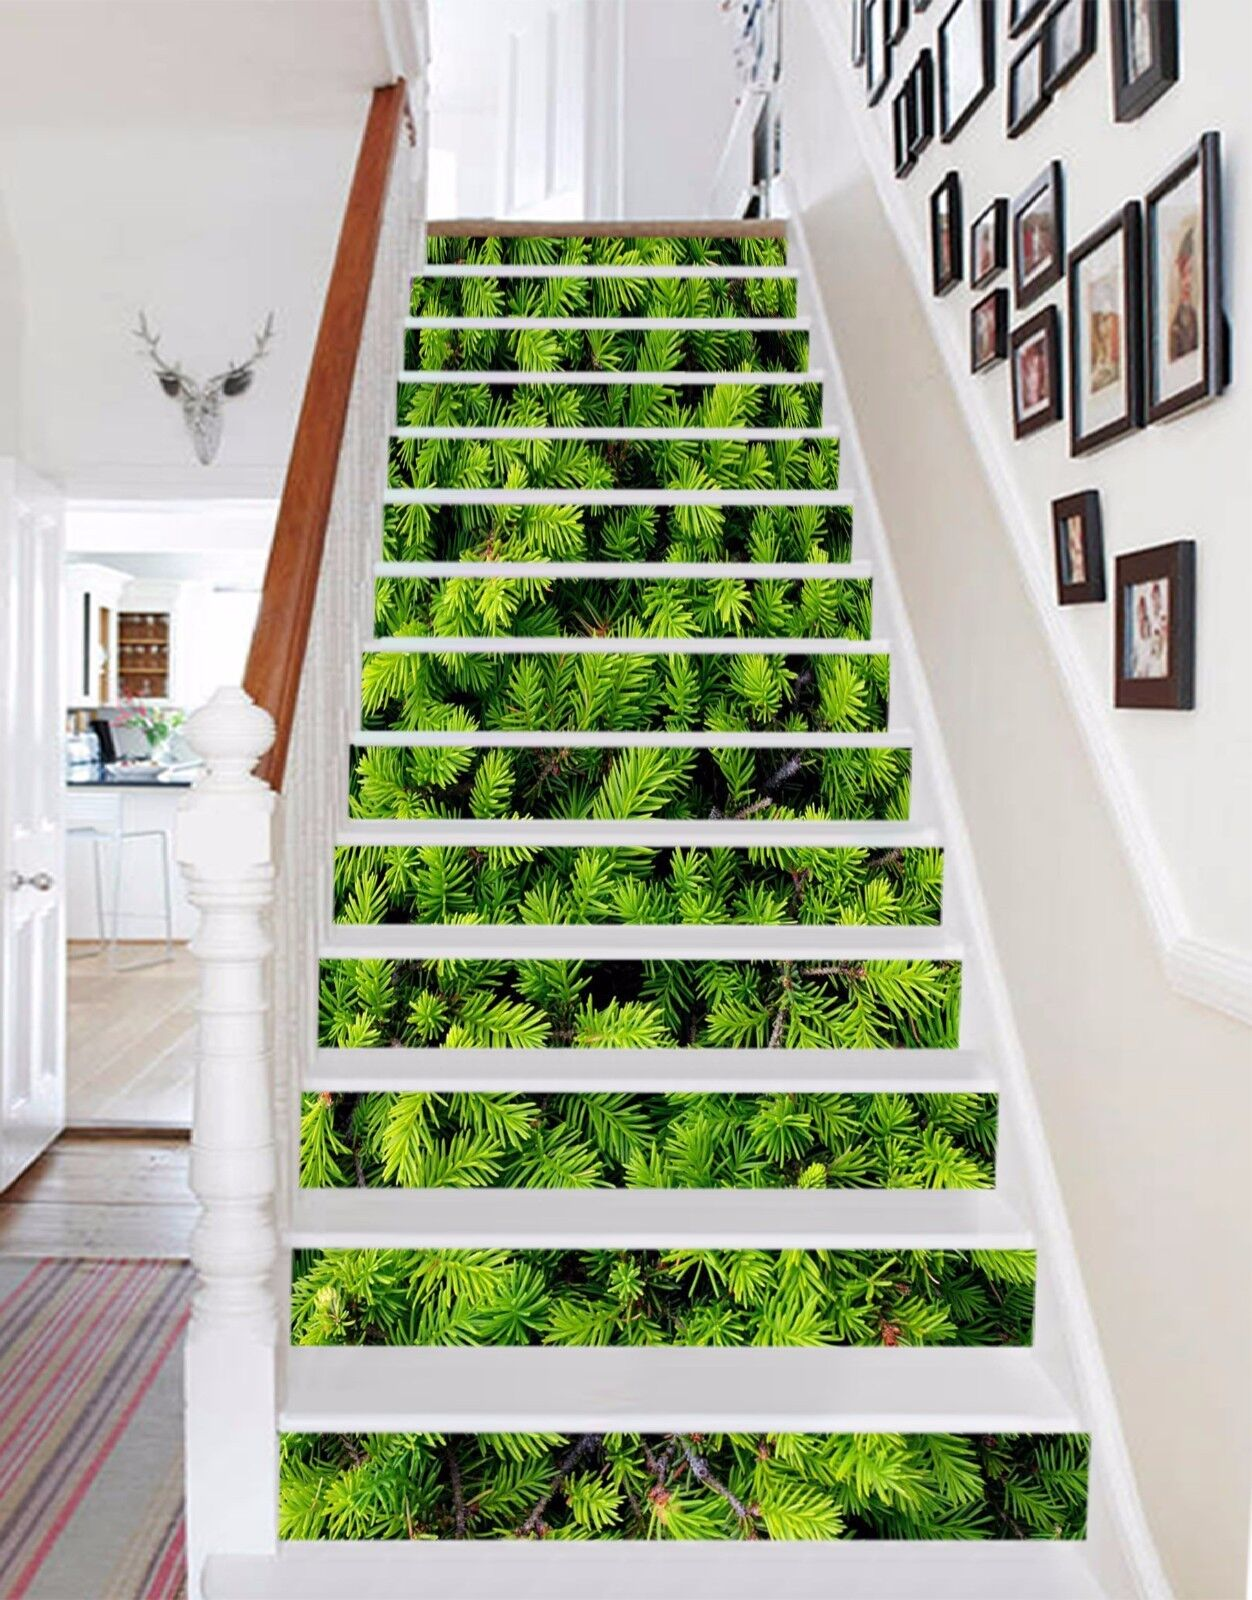 3D Grün leaves lawn 123 Risers Decoration Photo Mural Vinyl Decal WandPapier US